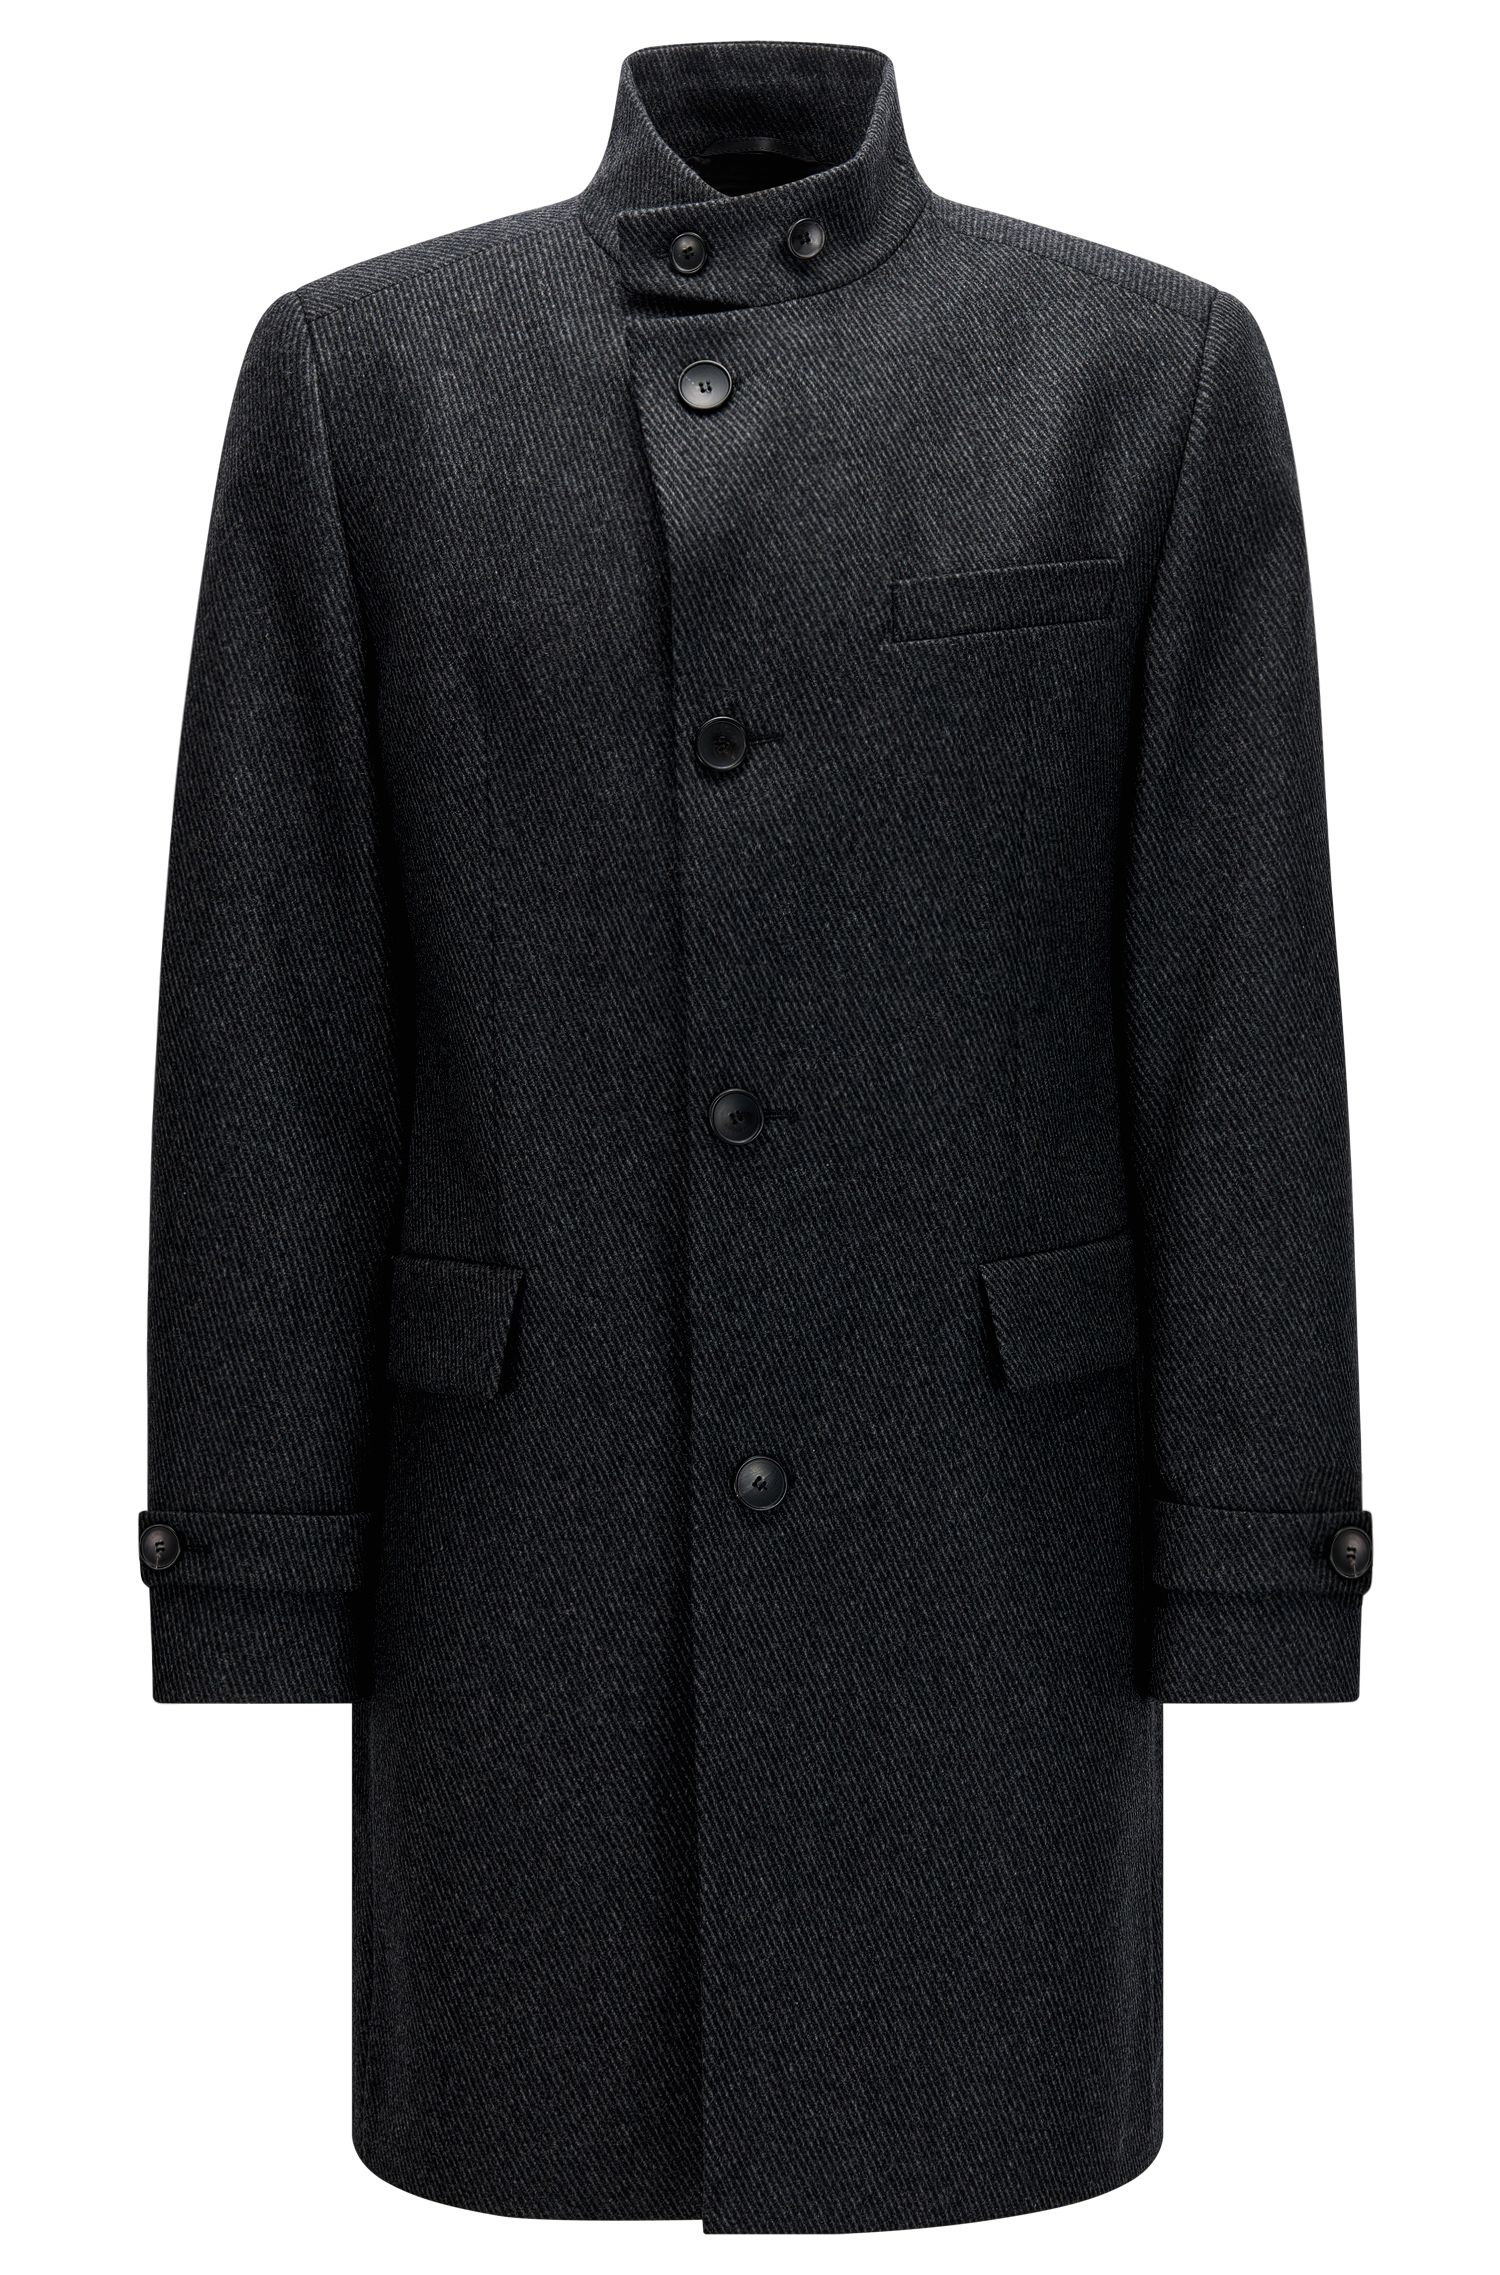 Manteau Regular Fit en laine structurée mélangée